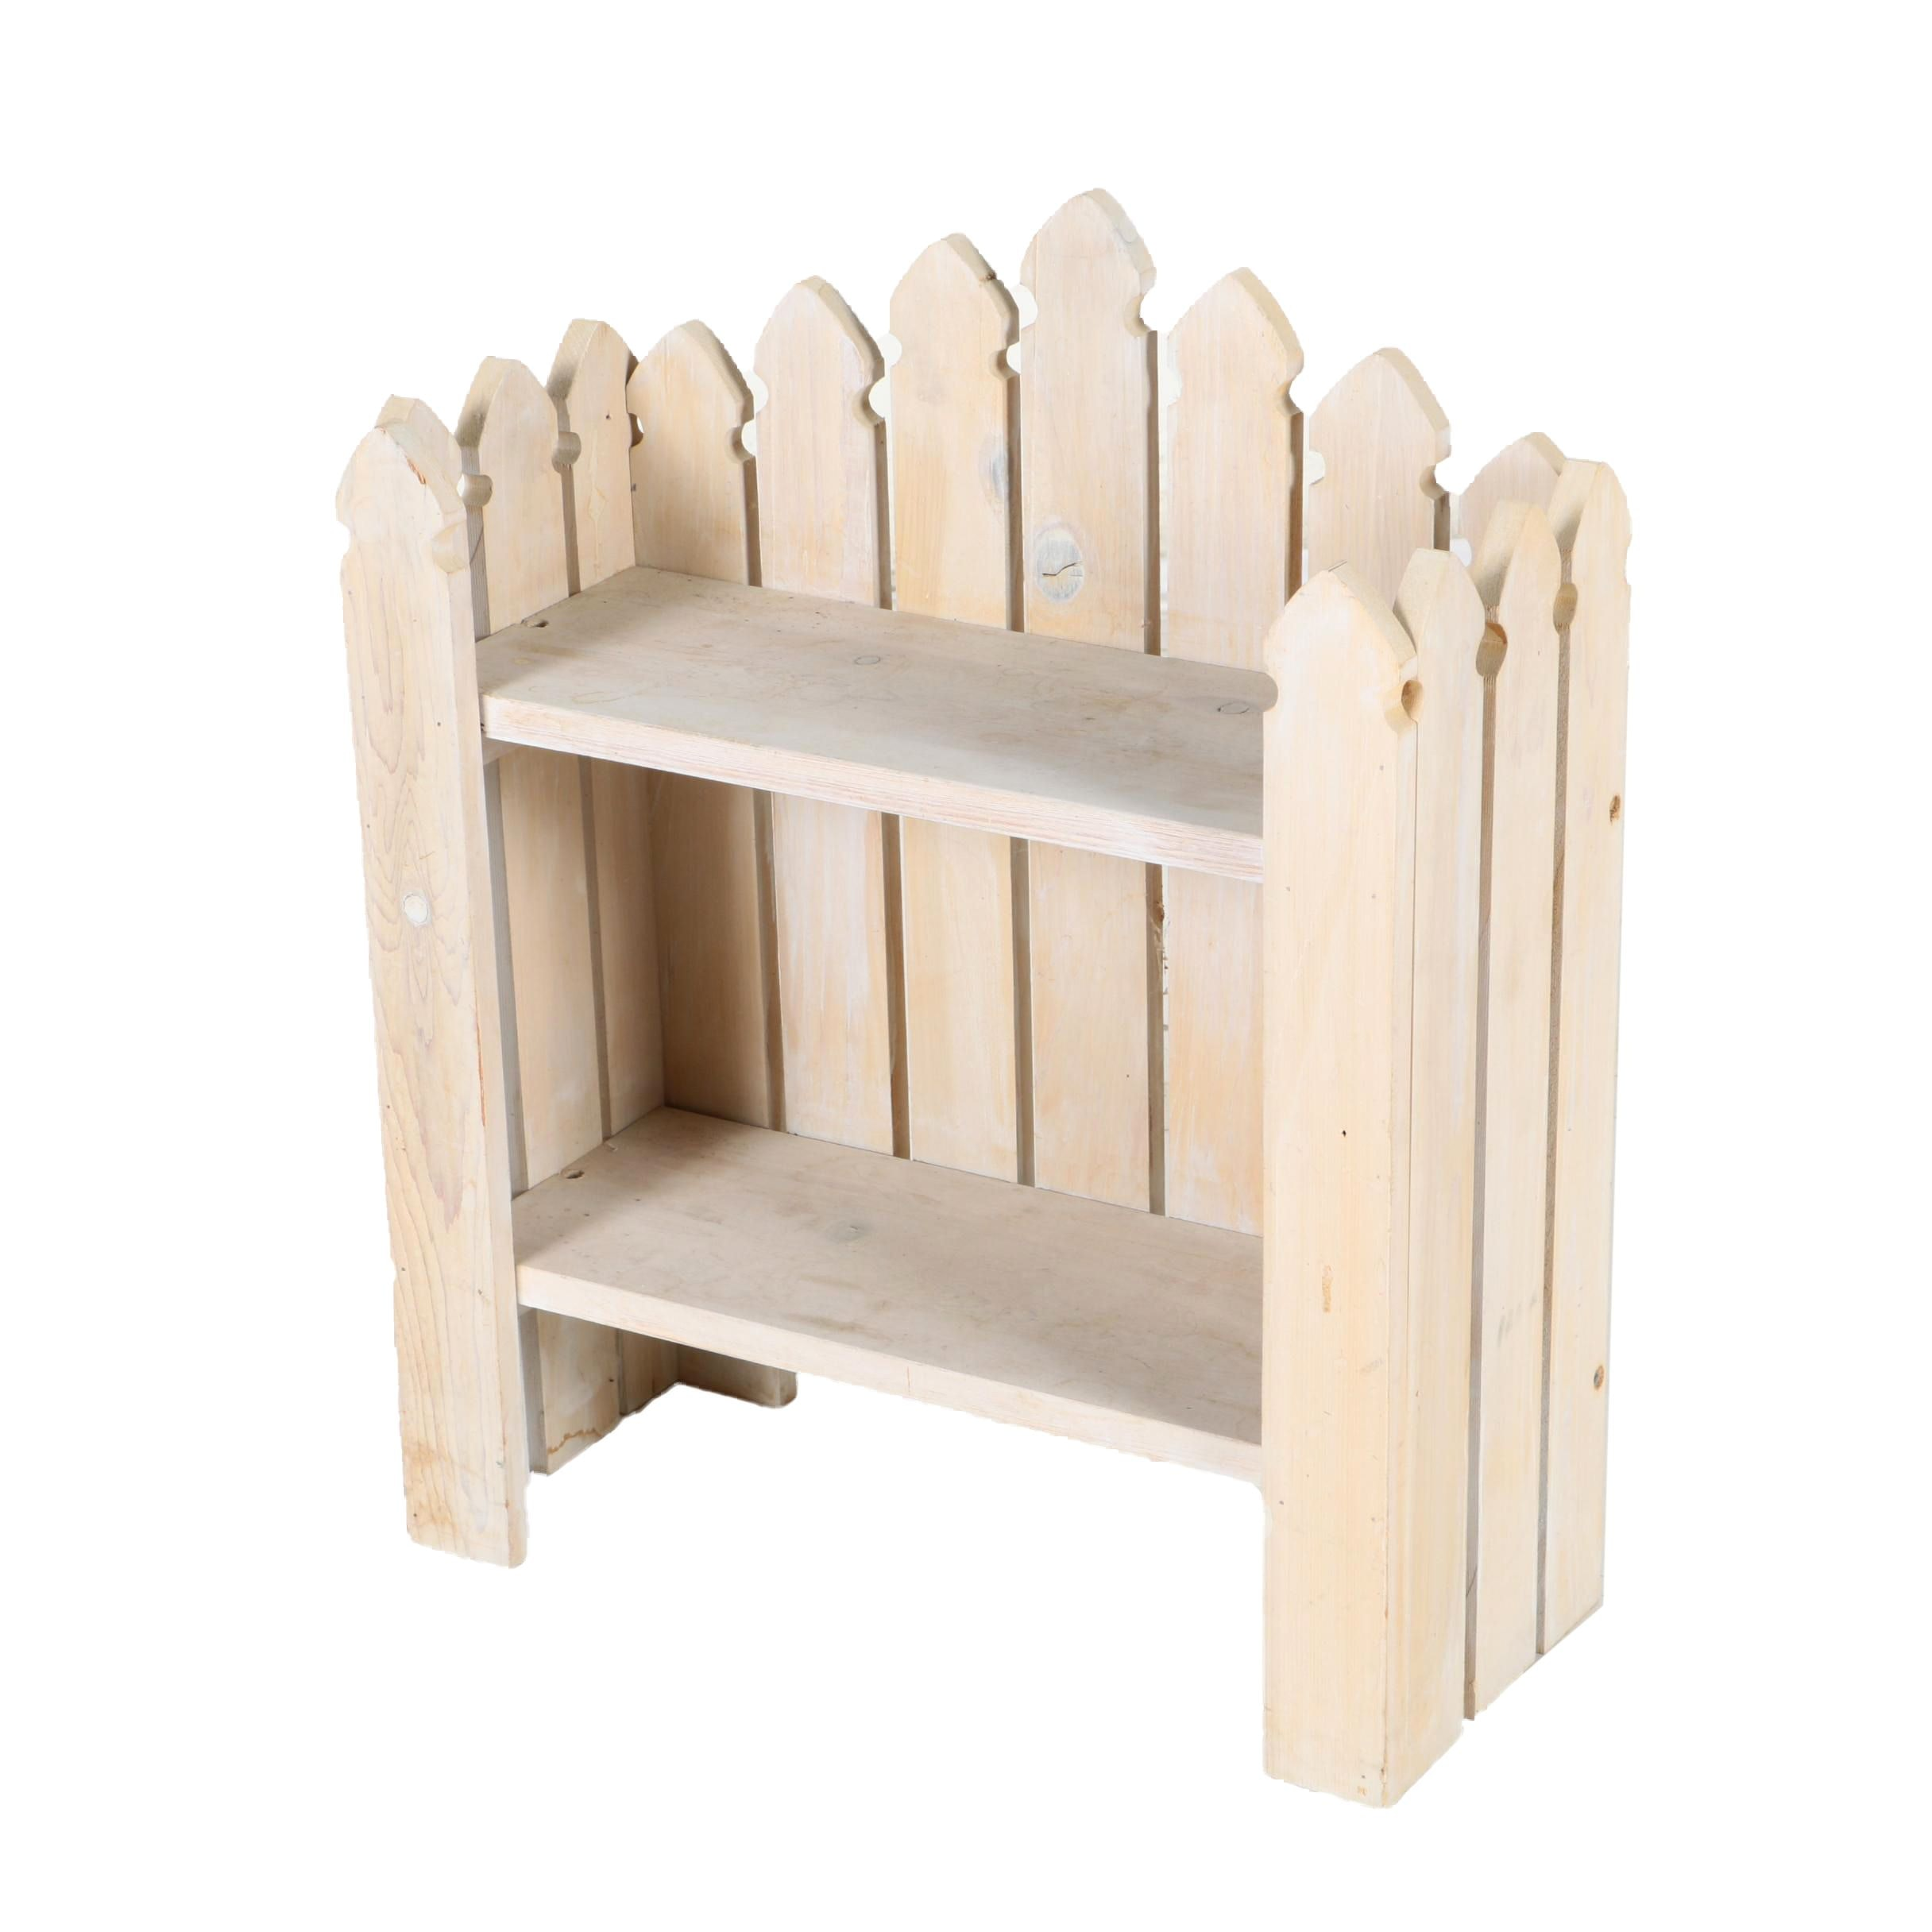 Wood Fence Framed Wall or Table Shelving